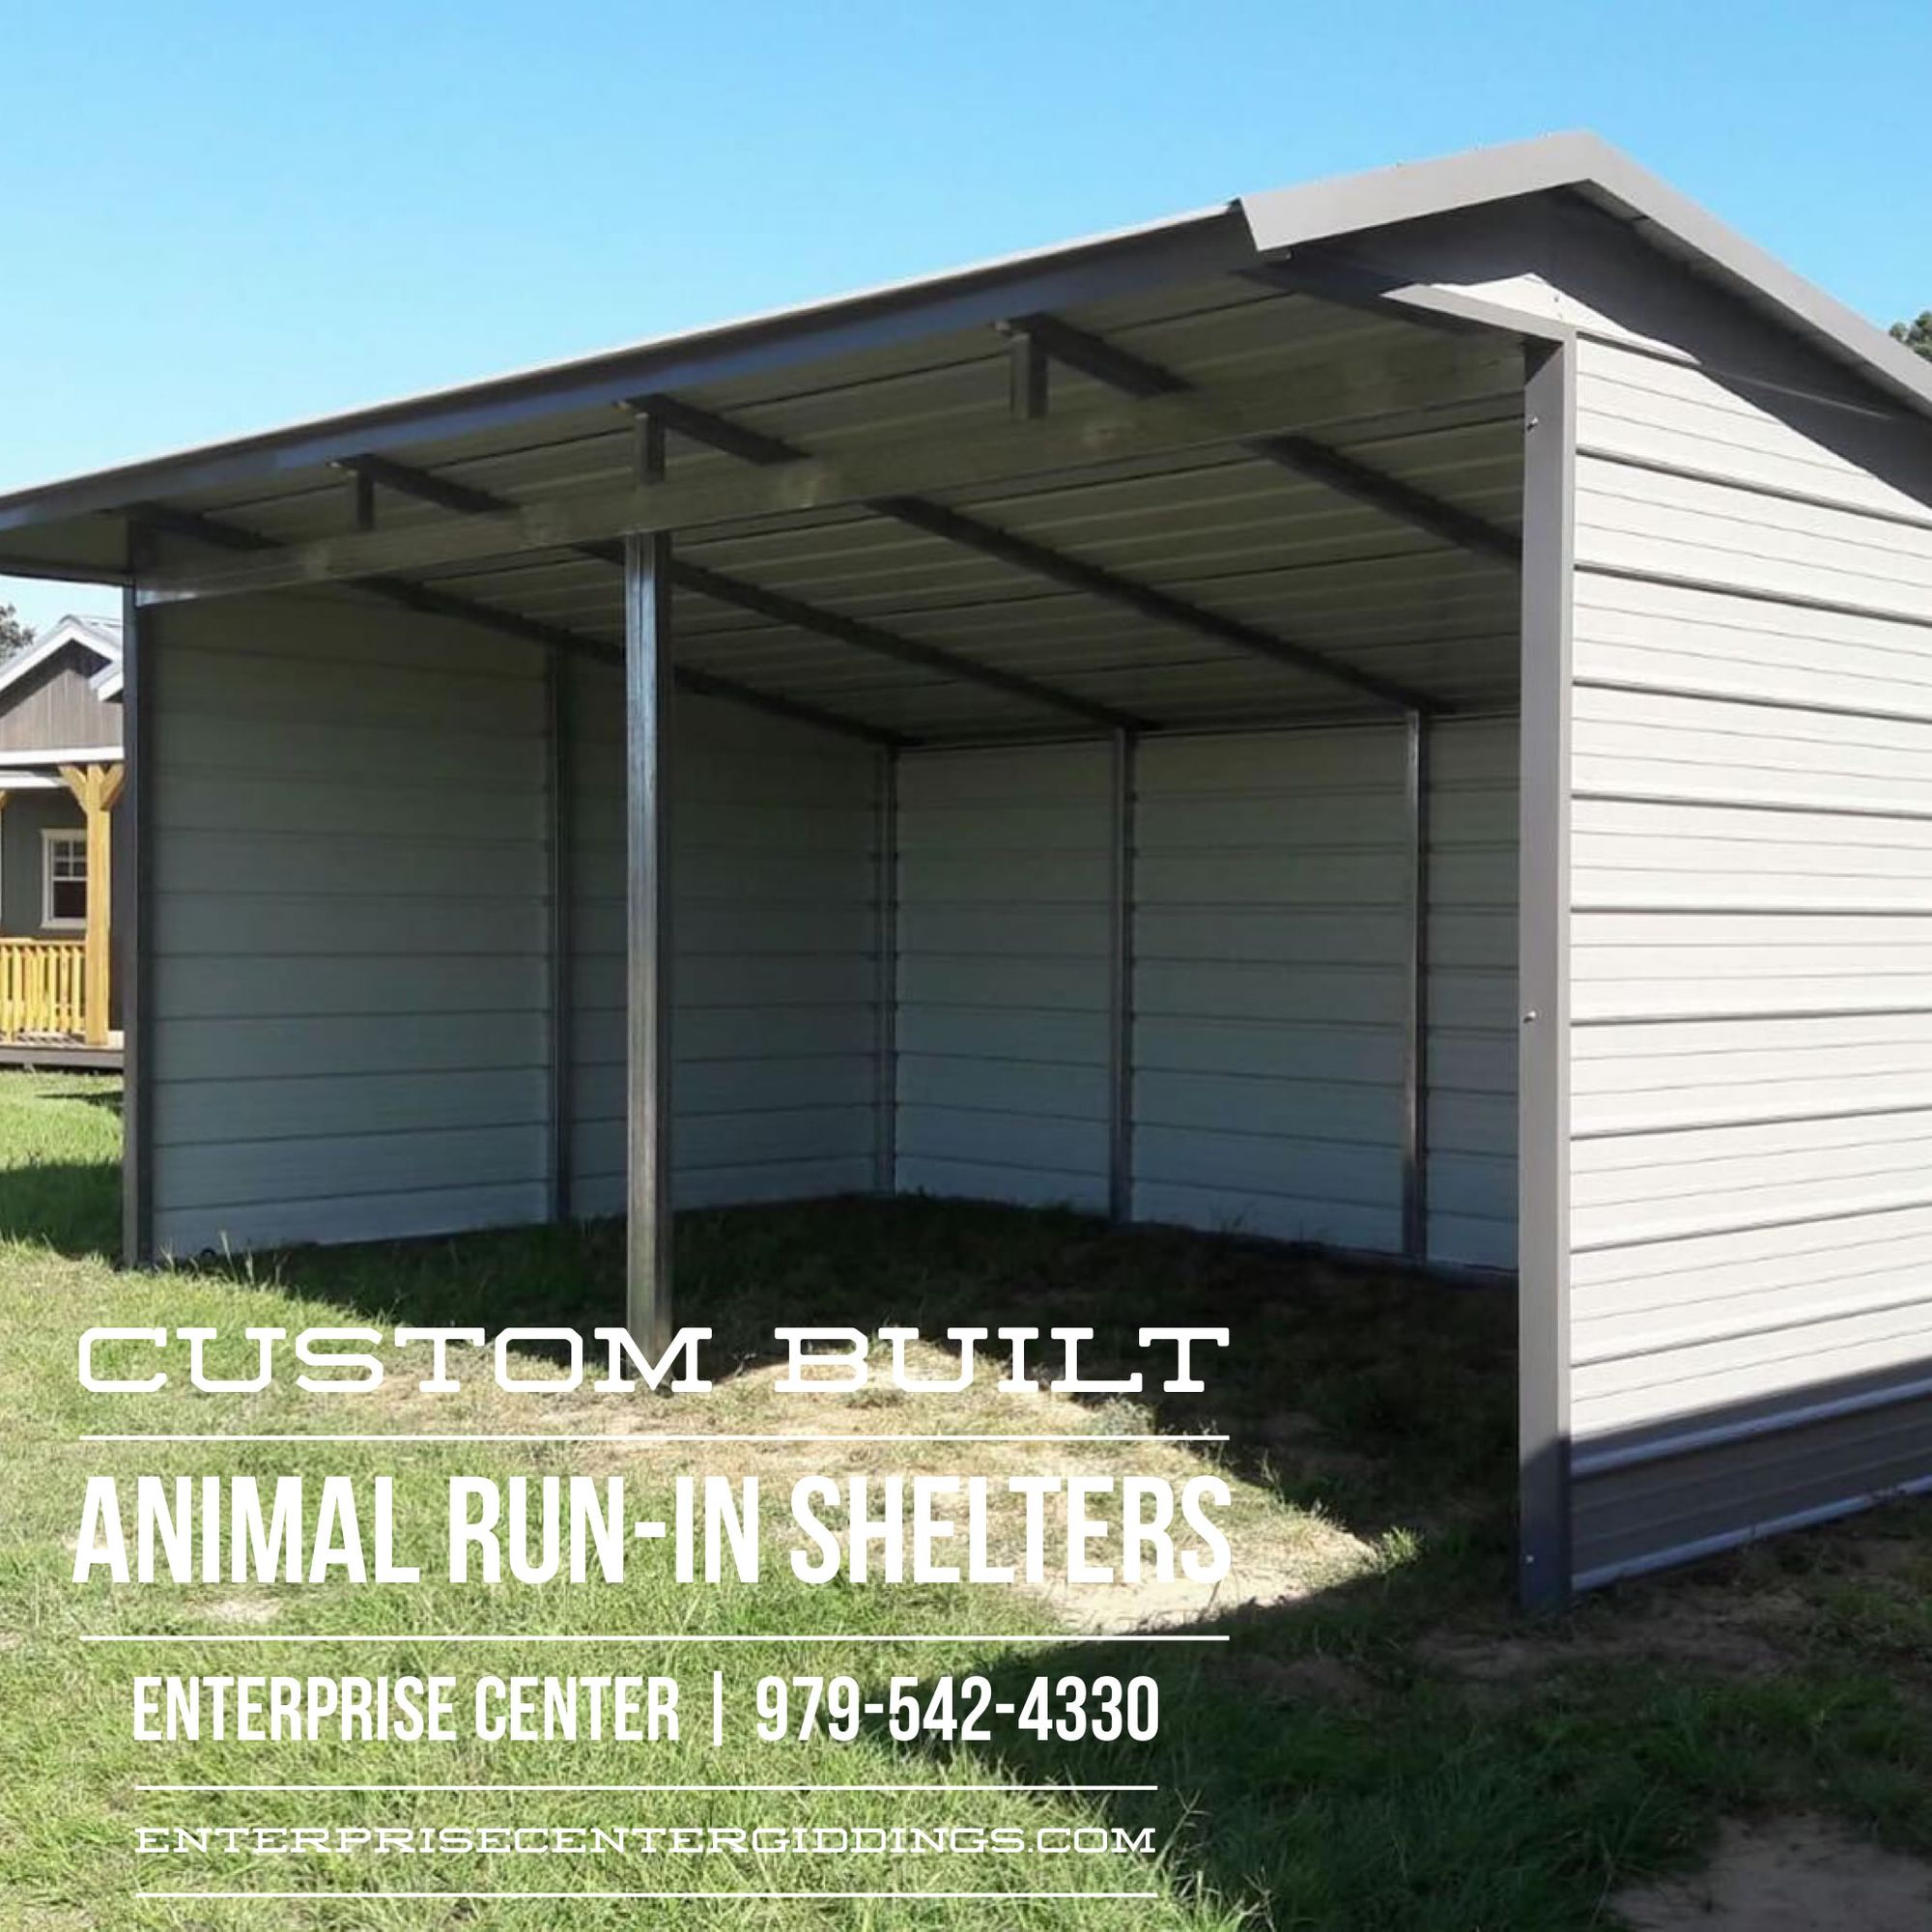 Call Us for more information about custom built animal run